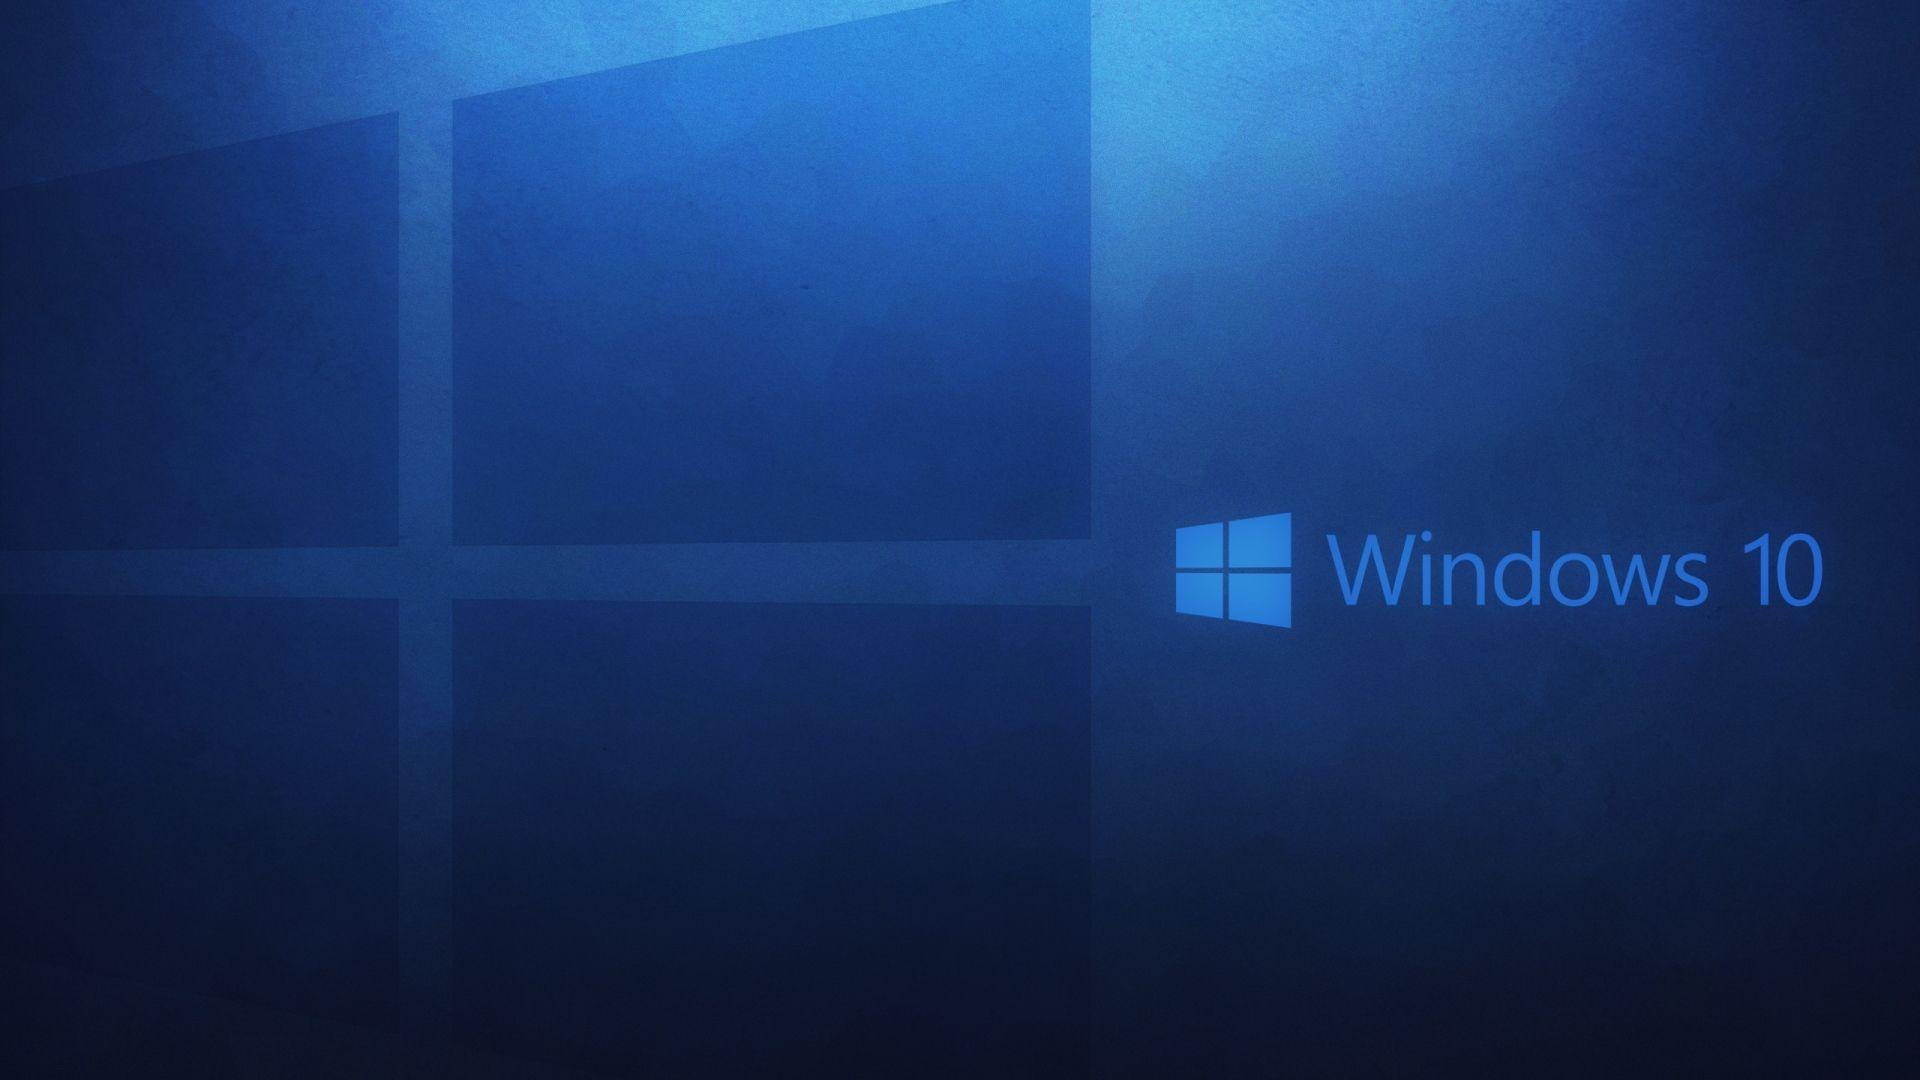 Windows 10 HD Wallpapers - Wallpaper Cave